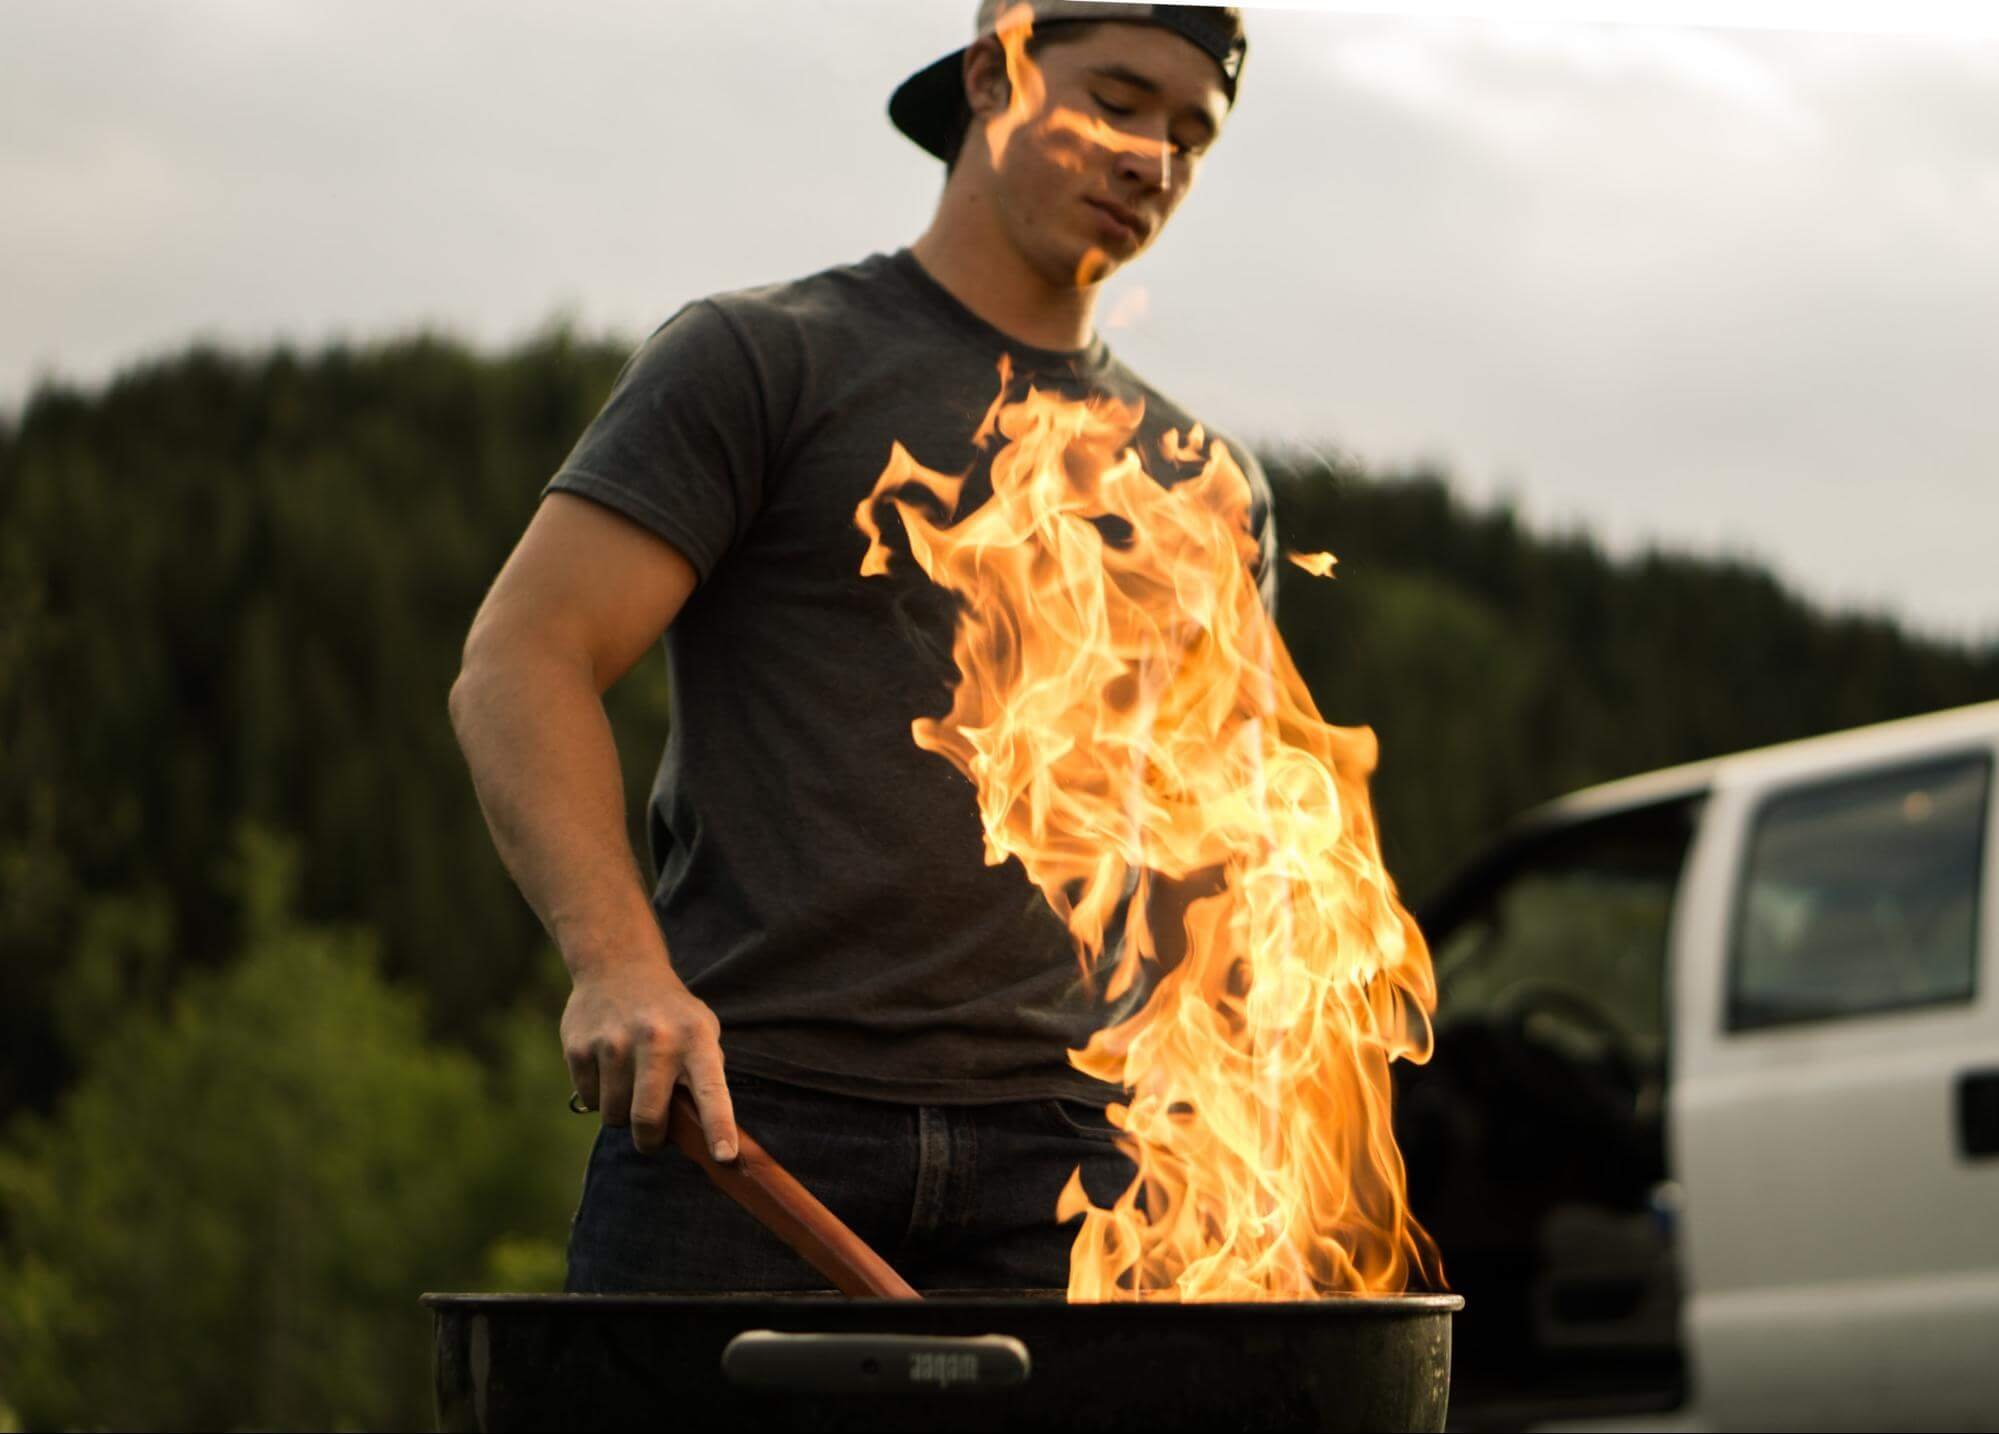 Man grilling over open flame grill